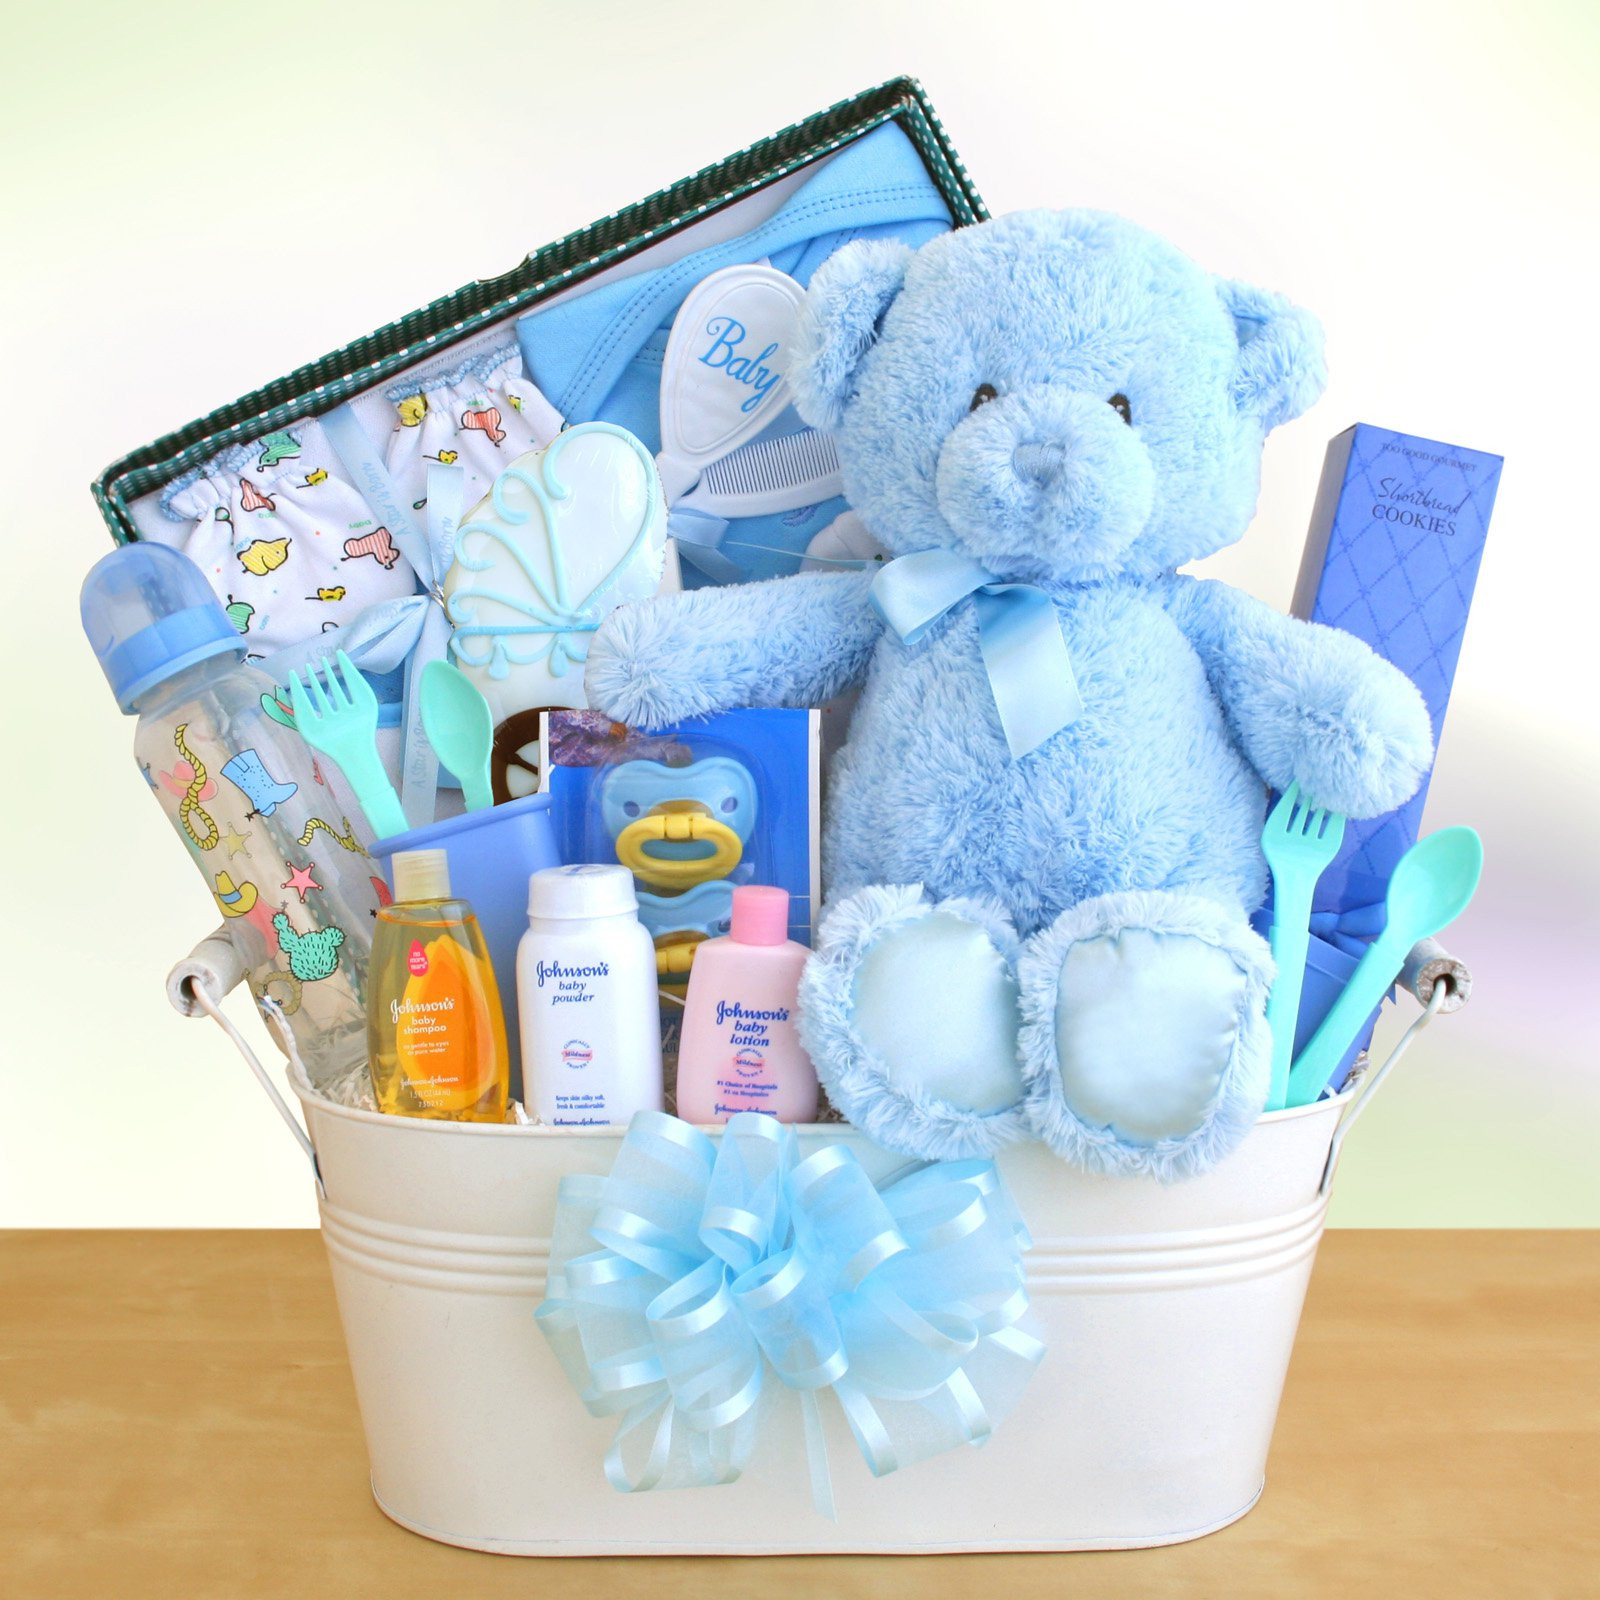 Best ideas about Baby Arrival Gift Ideas . Save or Pin New Arrival Baby Boy Gift Basket Gift Baskets by Now.